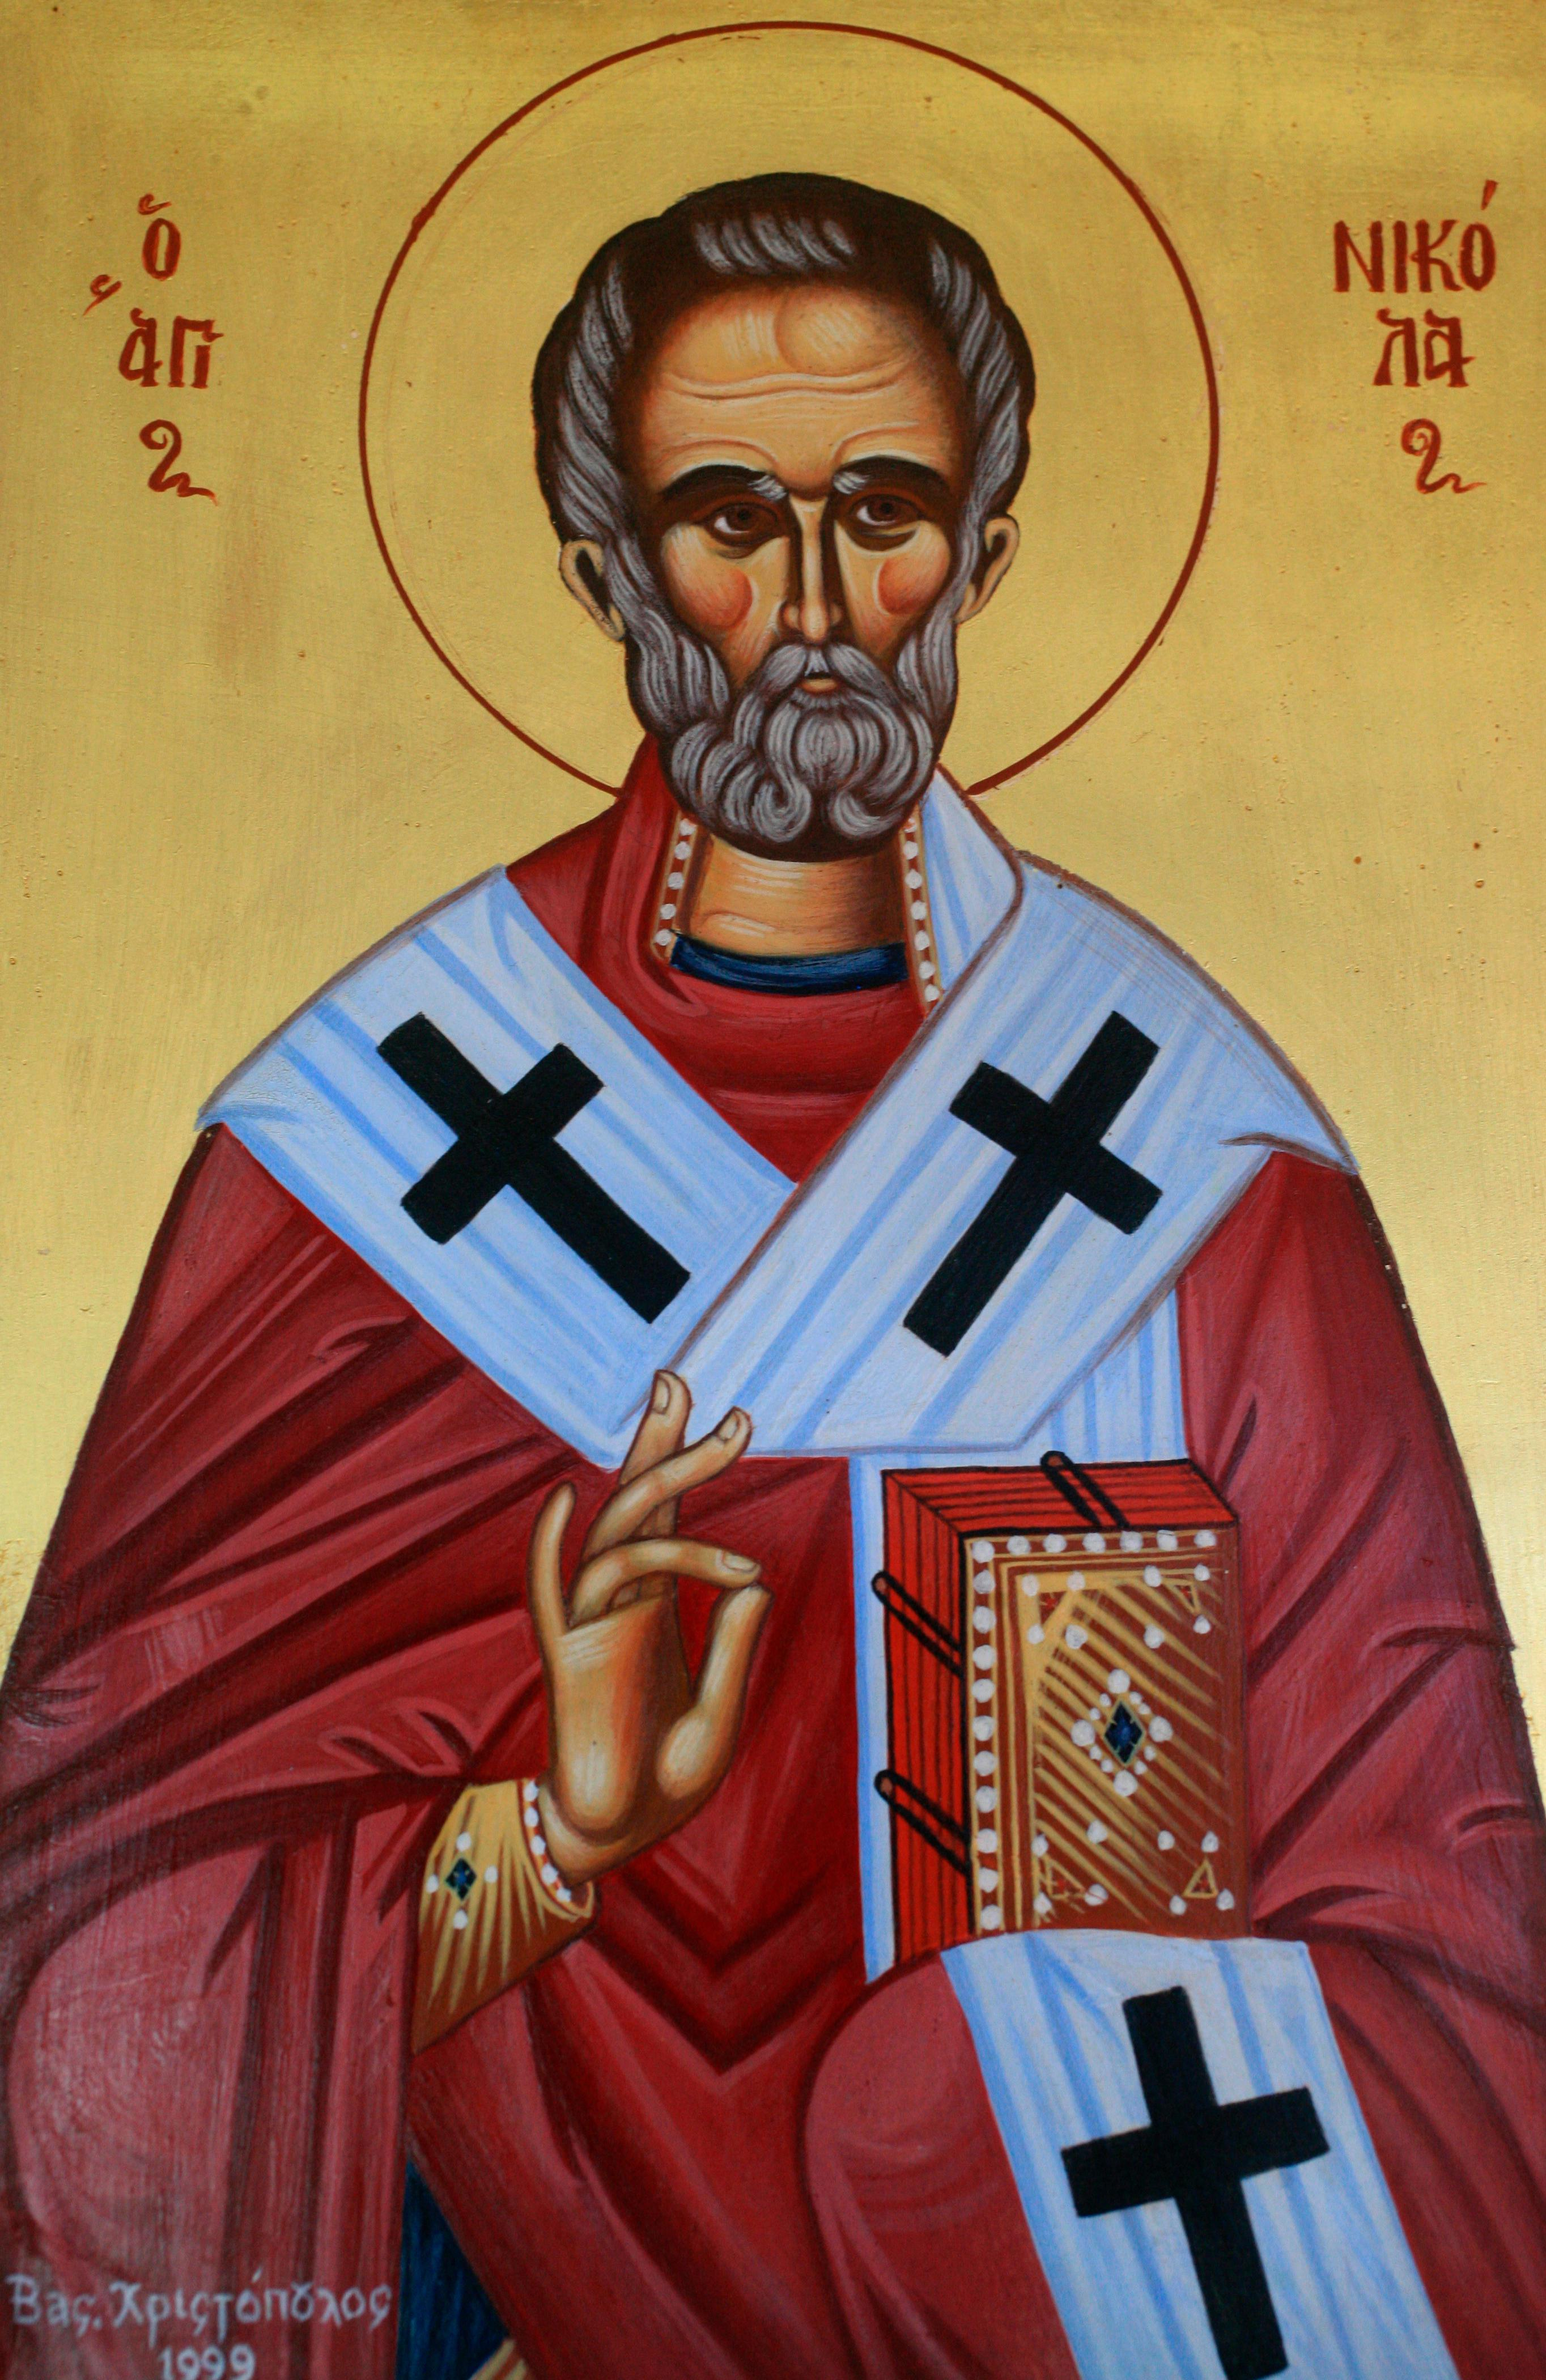 St Nicholas Day 2017 Is TODAY! Who Was The Saint And What Did He Do?